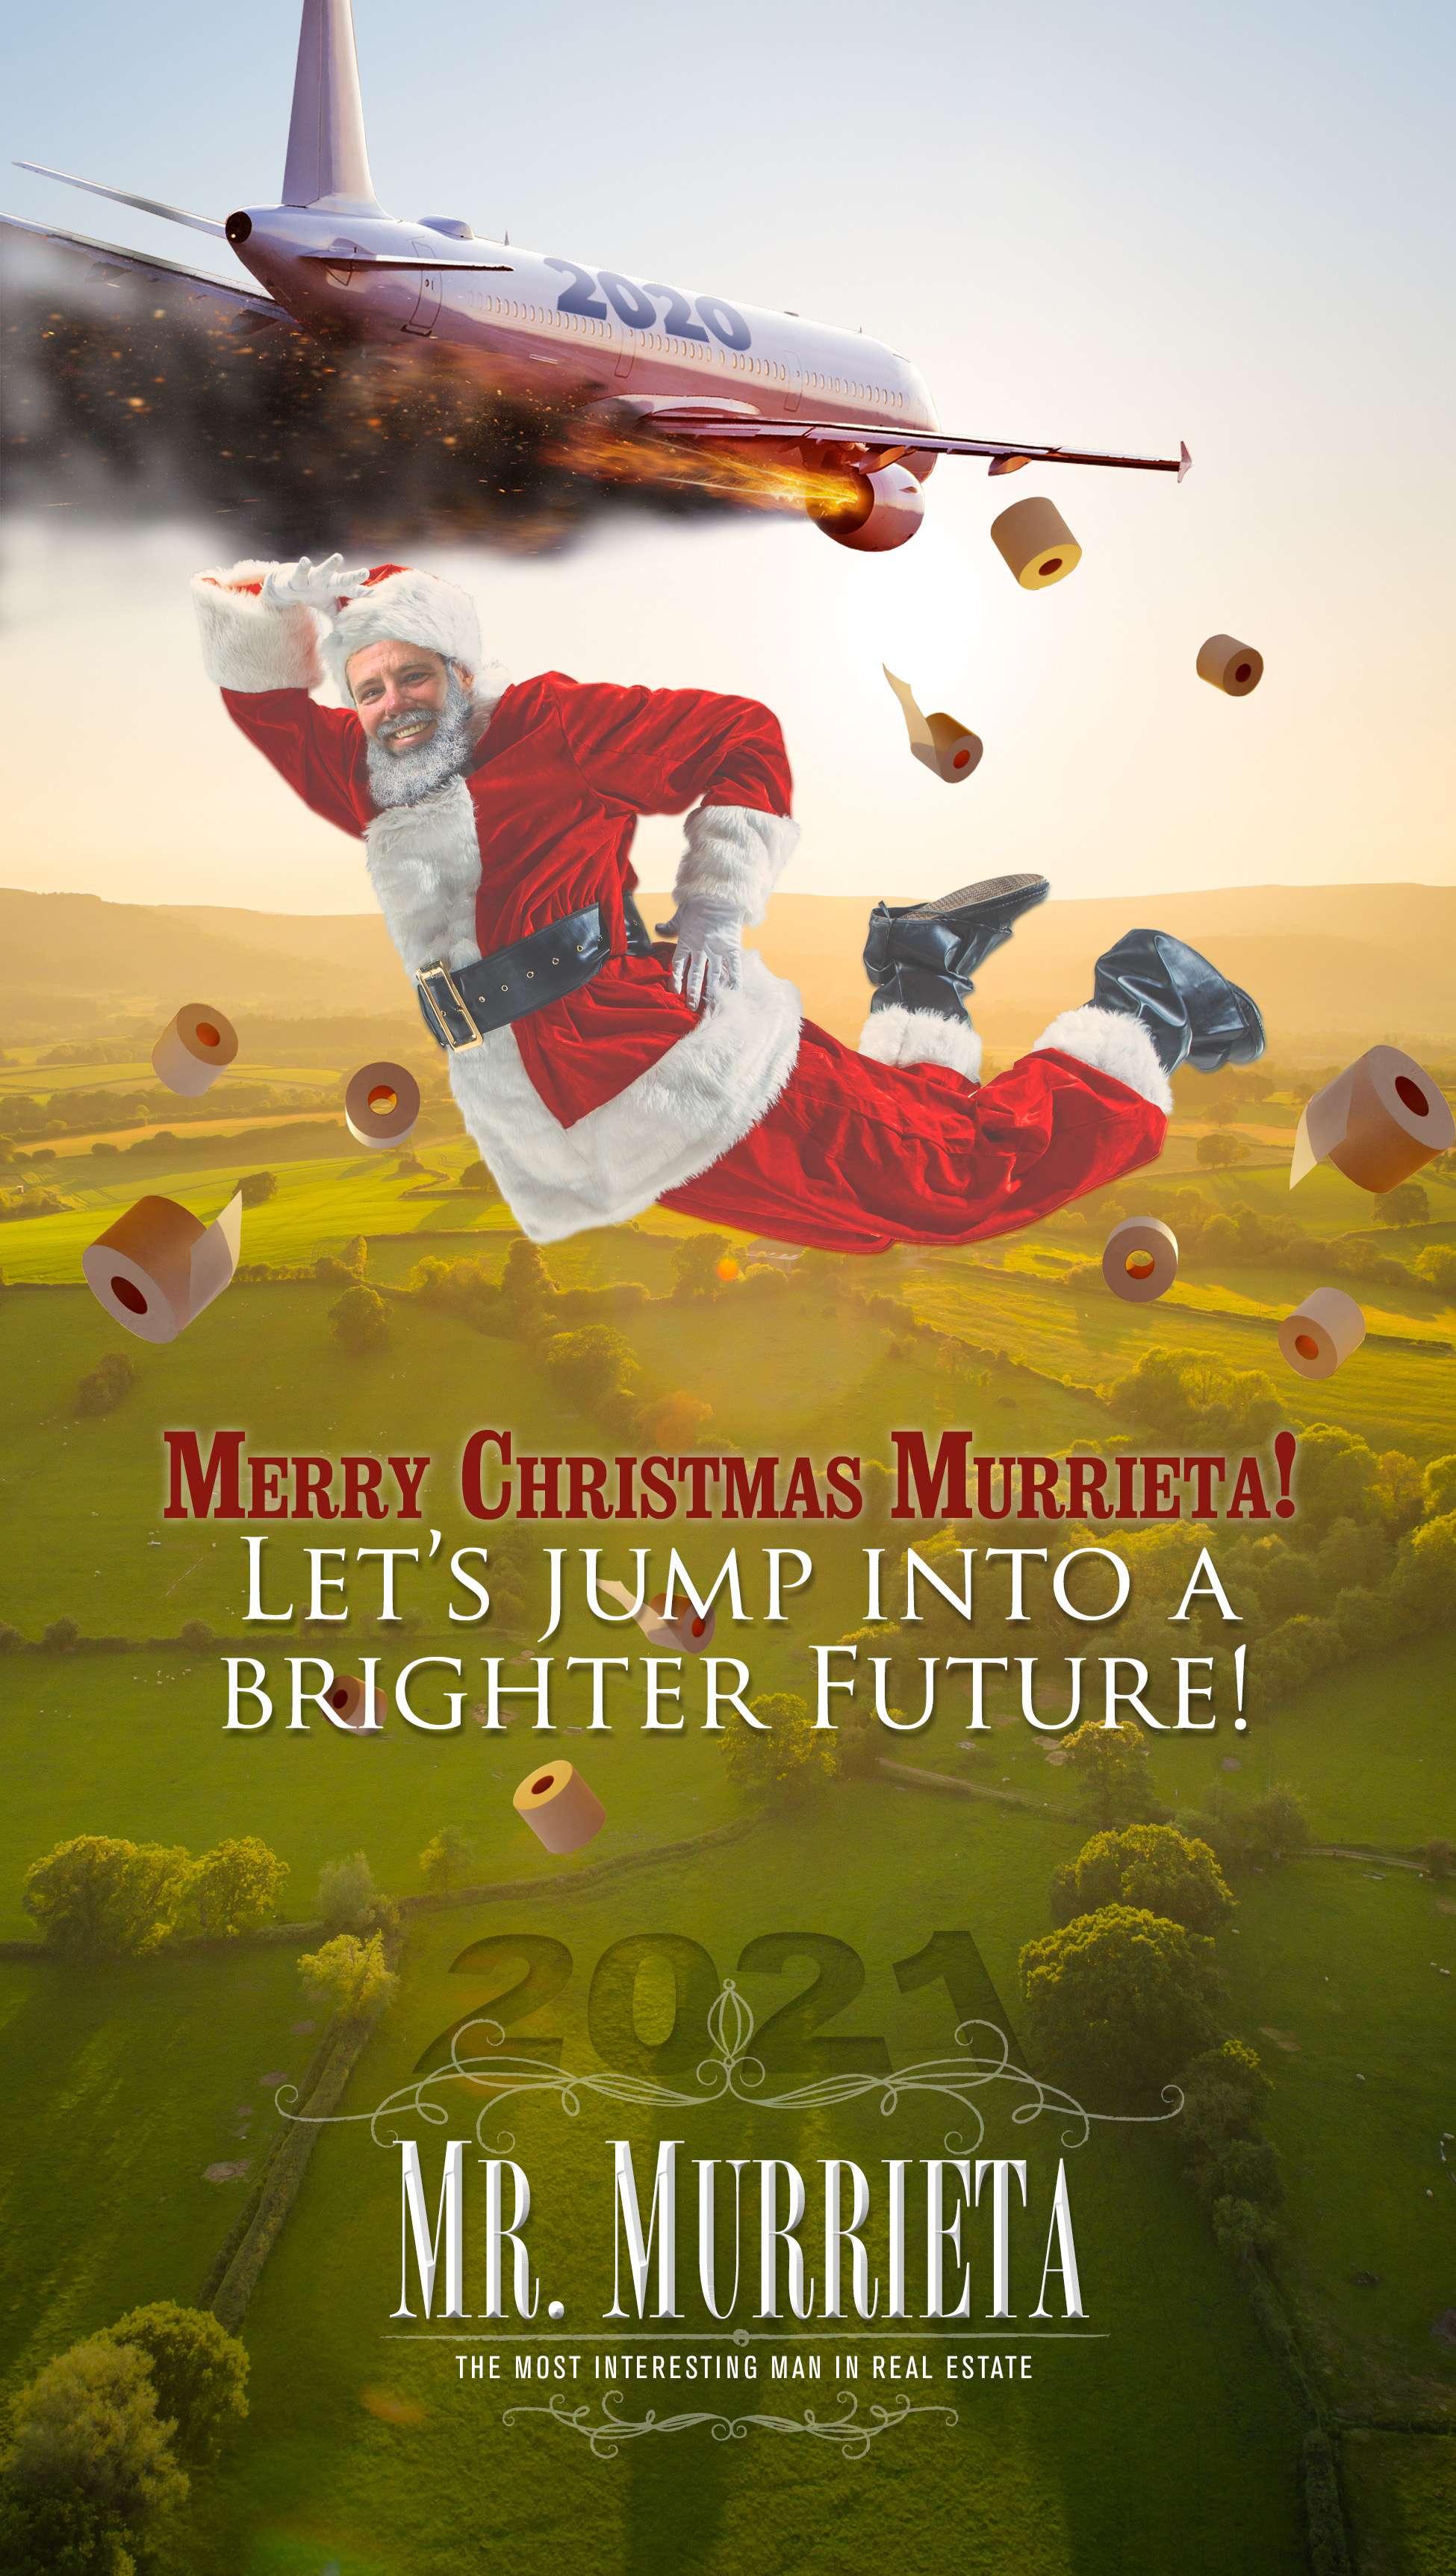 Merry Christmas Murrieta 2020